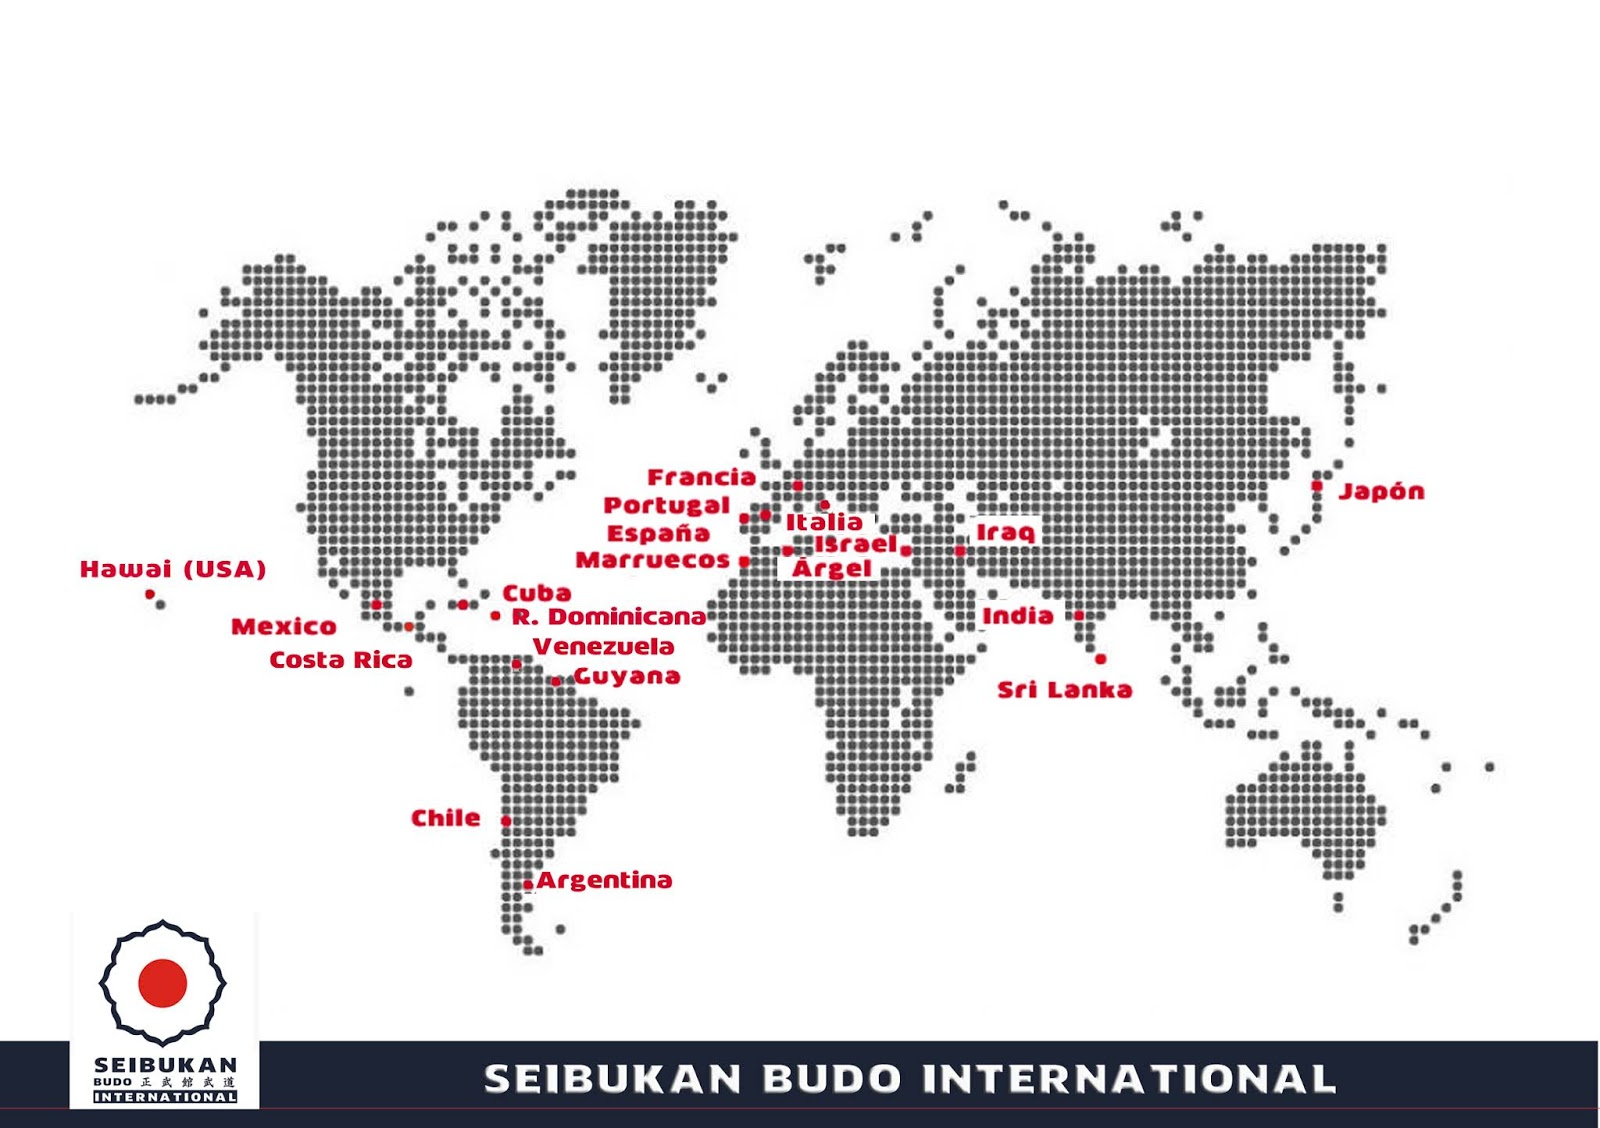 Seibukan Budo International (SBI)